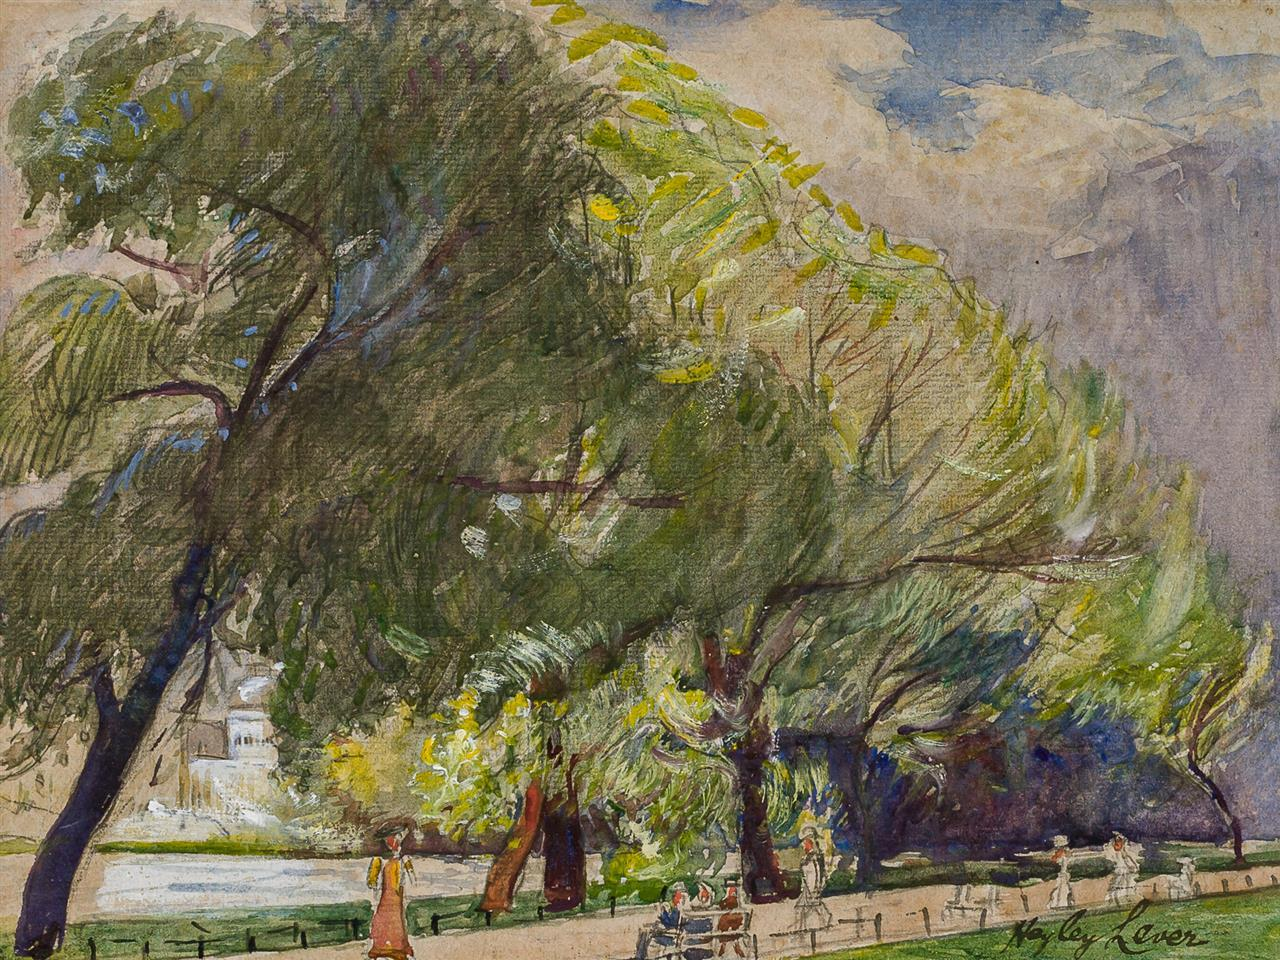 """RICHARD HAYLEY LEVER, American (1876-1958), Park Beside the Hudson, gouache on paper, signed lower right """"Hayley Lever"""", 9 x 12 inch..."""